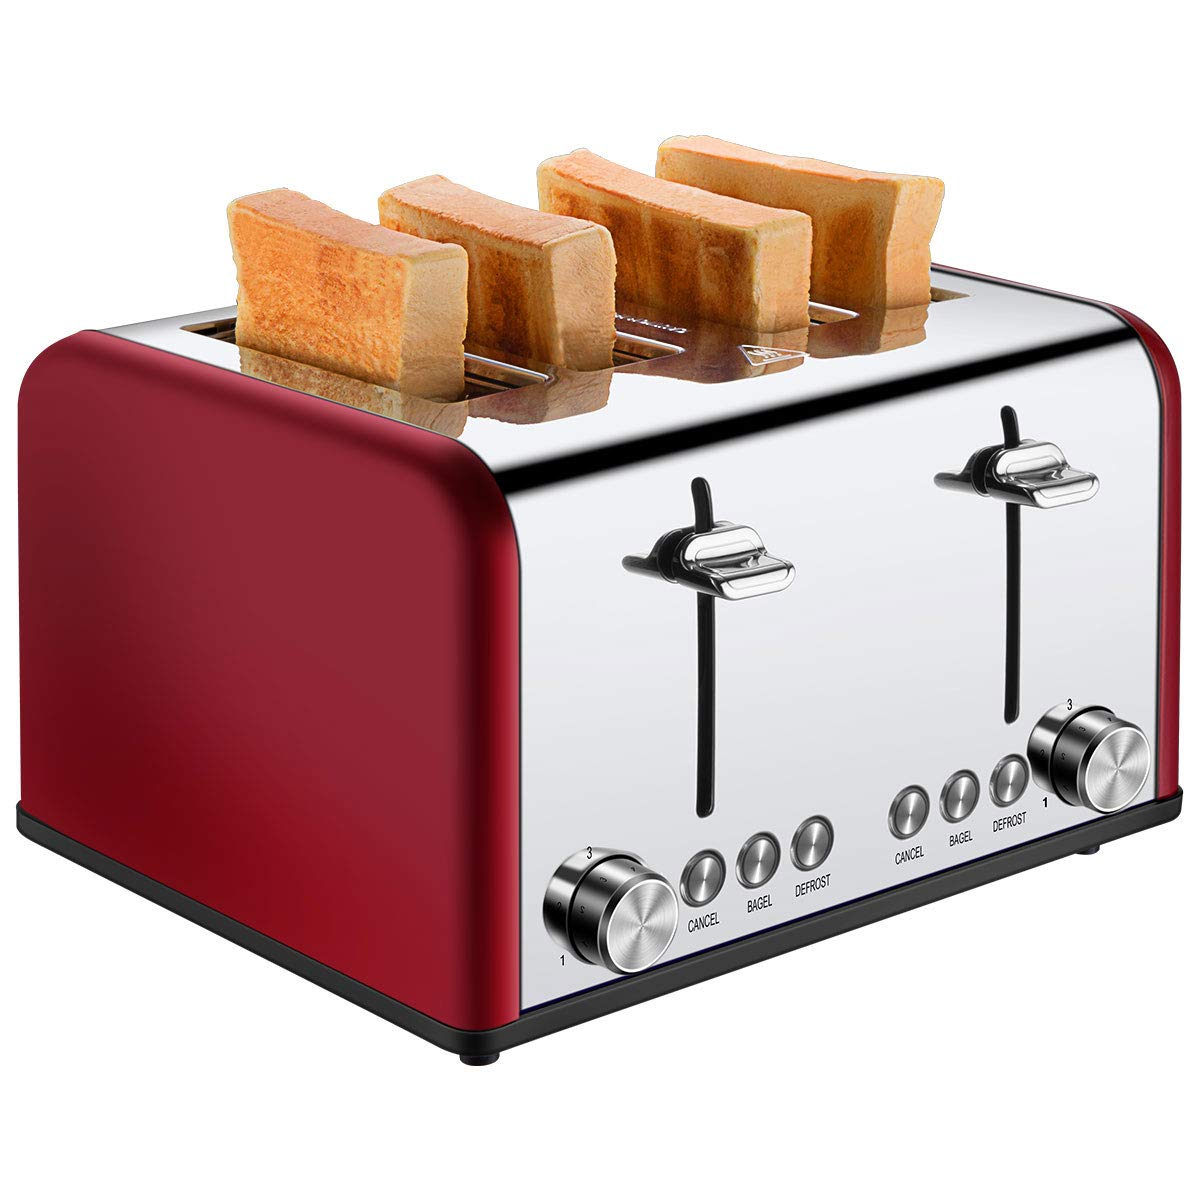 4 Slice Toaster, CUSIBOX Stainless Steel Toaster with Bagel, Defrost, Cancel Function, Extra Wide Slots, 6 Bread Shade Settings, 1650W, Red by CUSIBOX